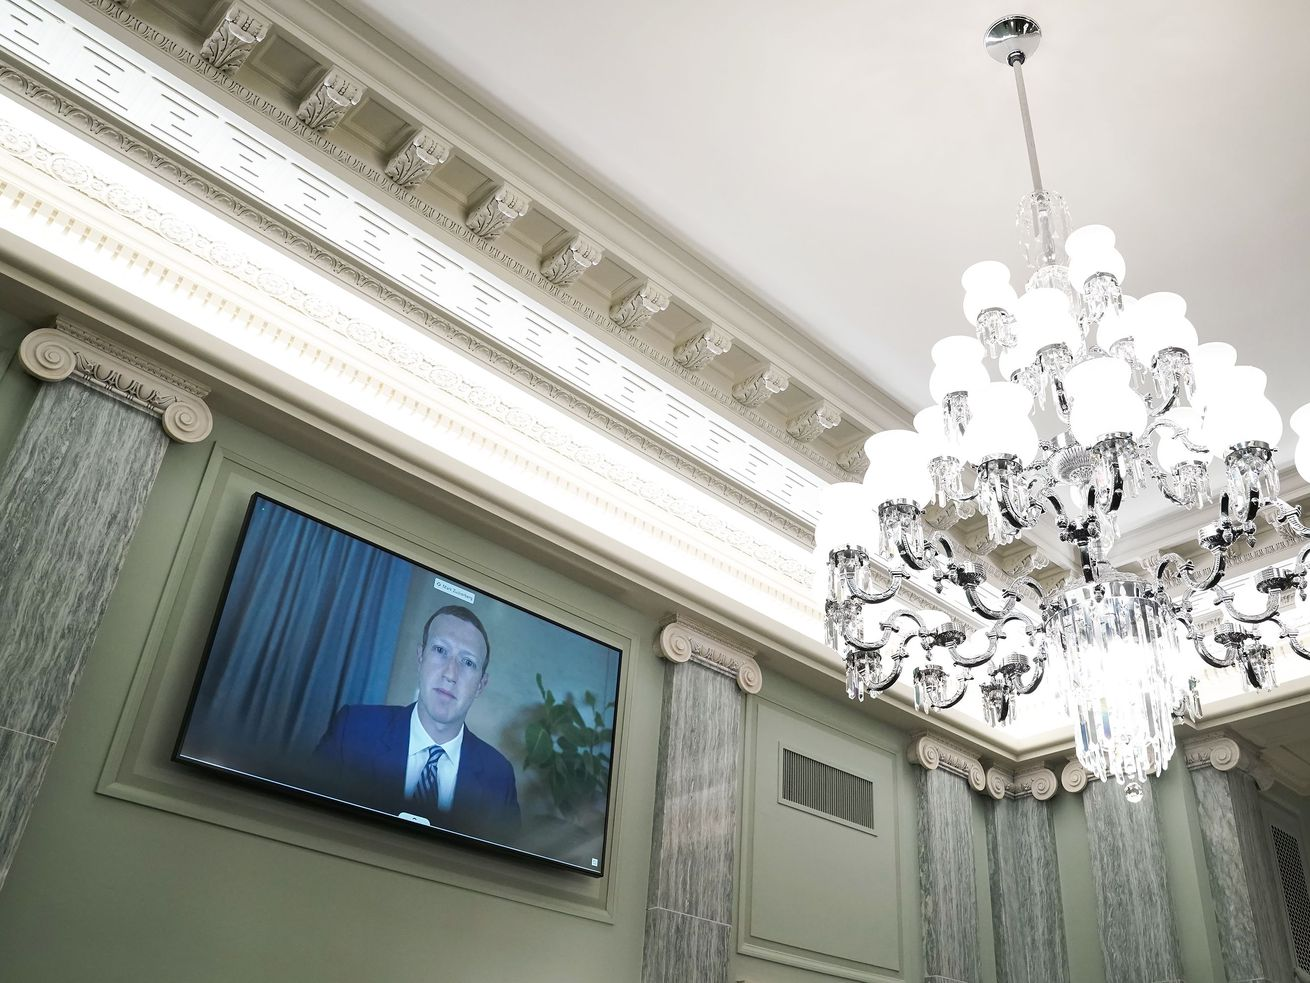 Facebook CEO Mark Zuckerberg appears on a screen on the wall of the Senate beside a large chandelier.